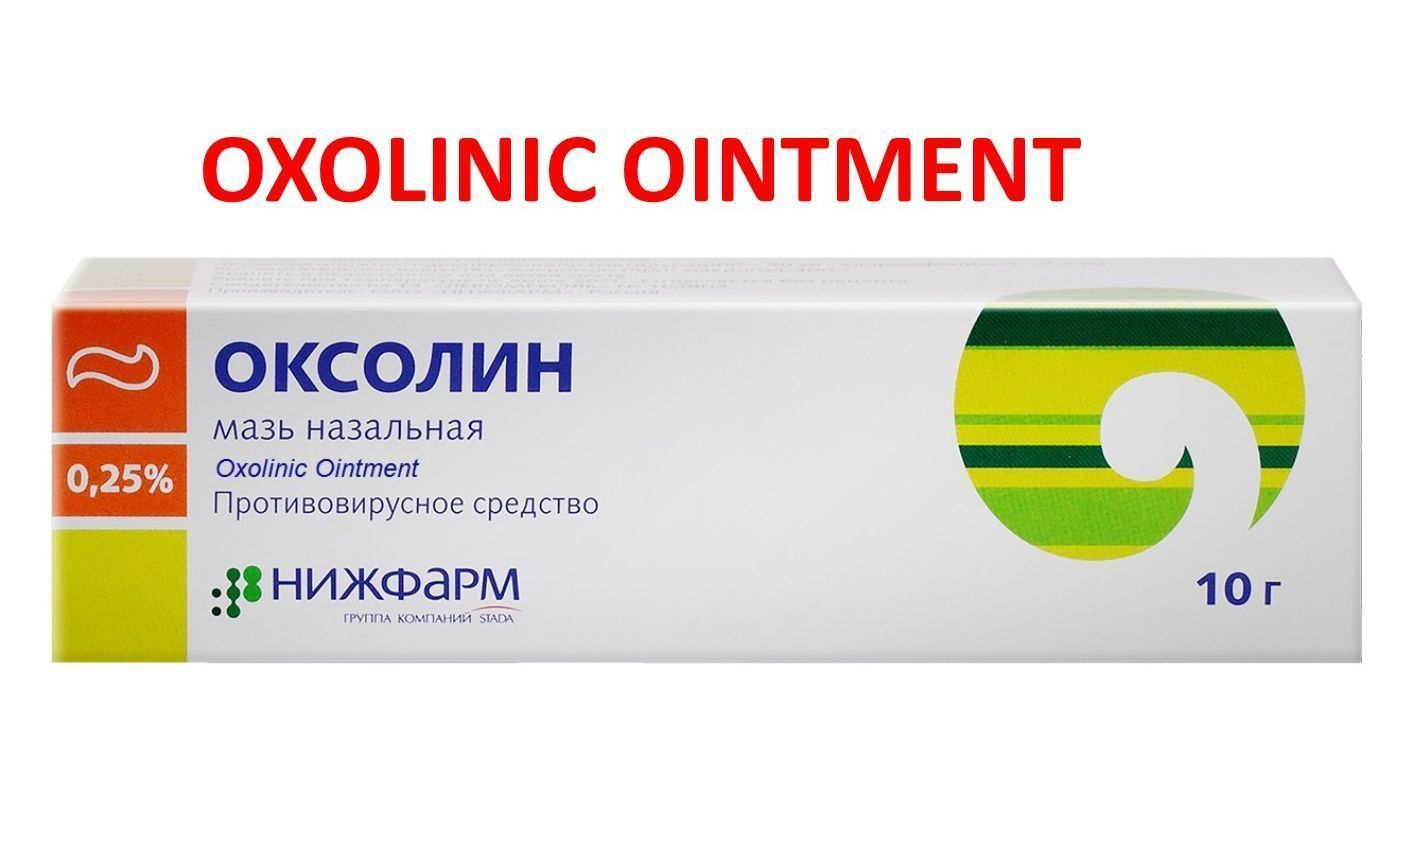 Oxolinic ointment: reviews on the application. Oxolinic ointment for warts, papillomas and warts 58